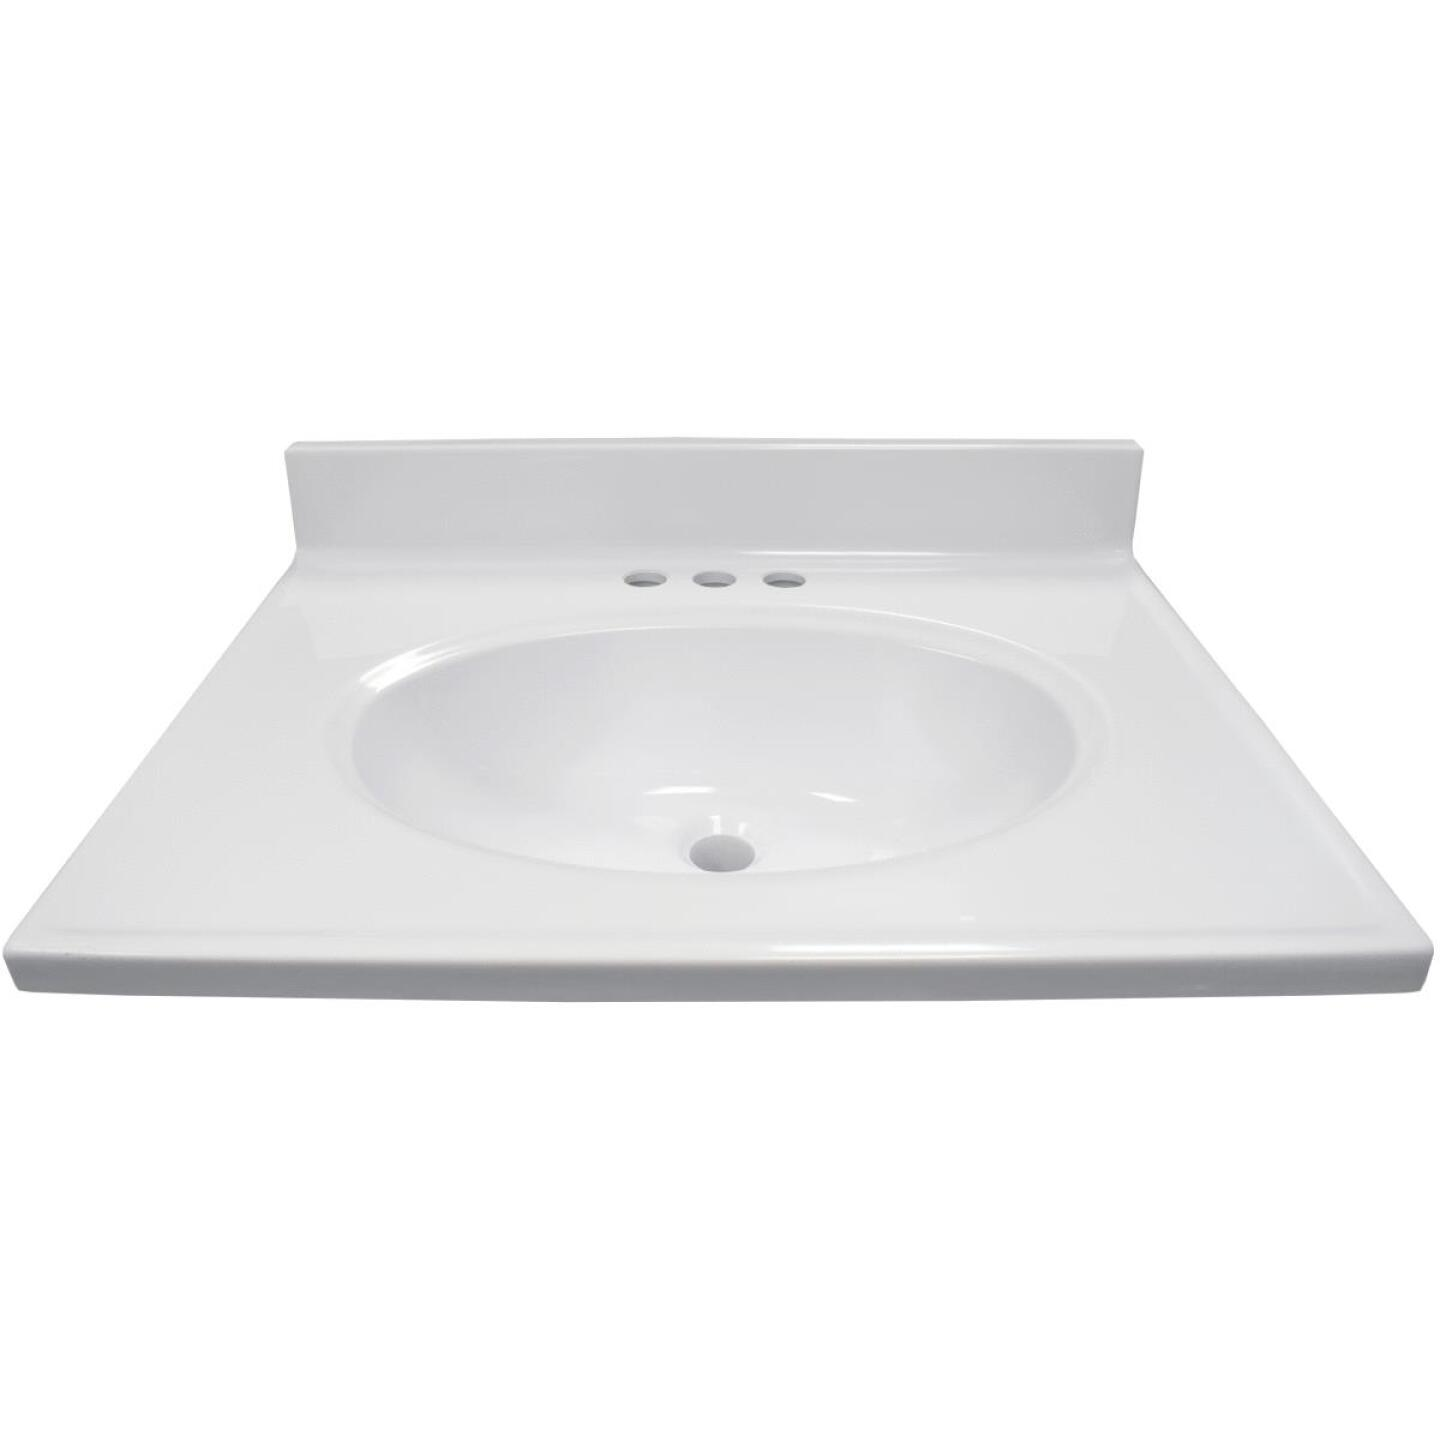 US Marble 25 In. W x 19 In. D Solid White Cultured Marble Vanity Top with Oval Bowl Image 2